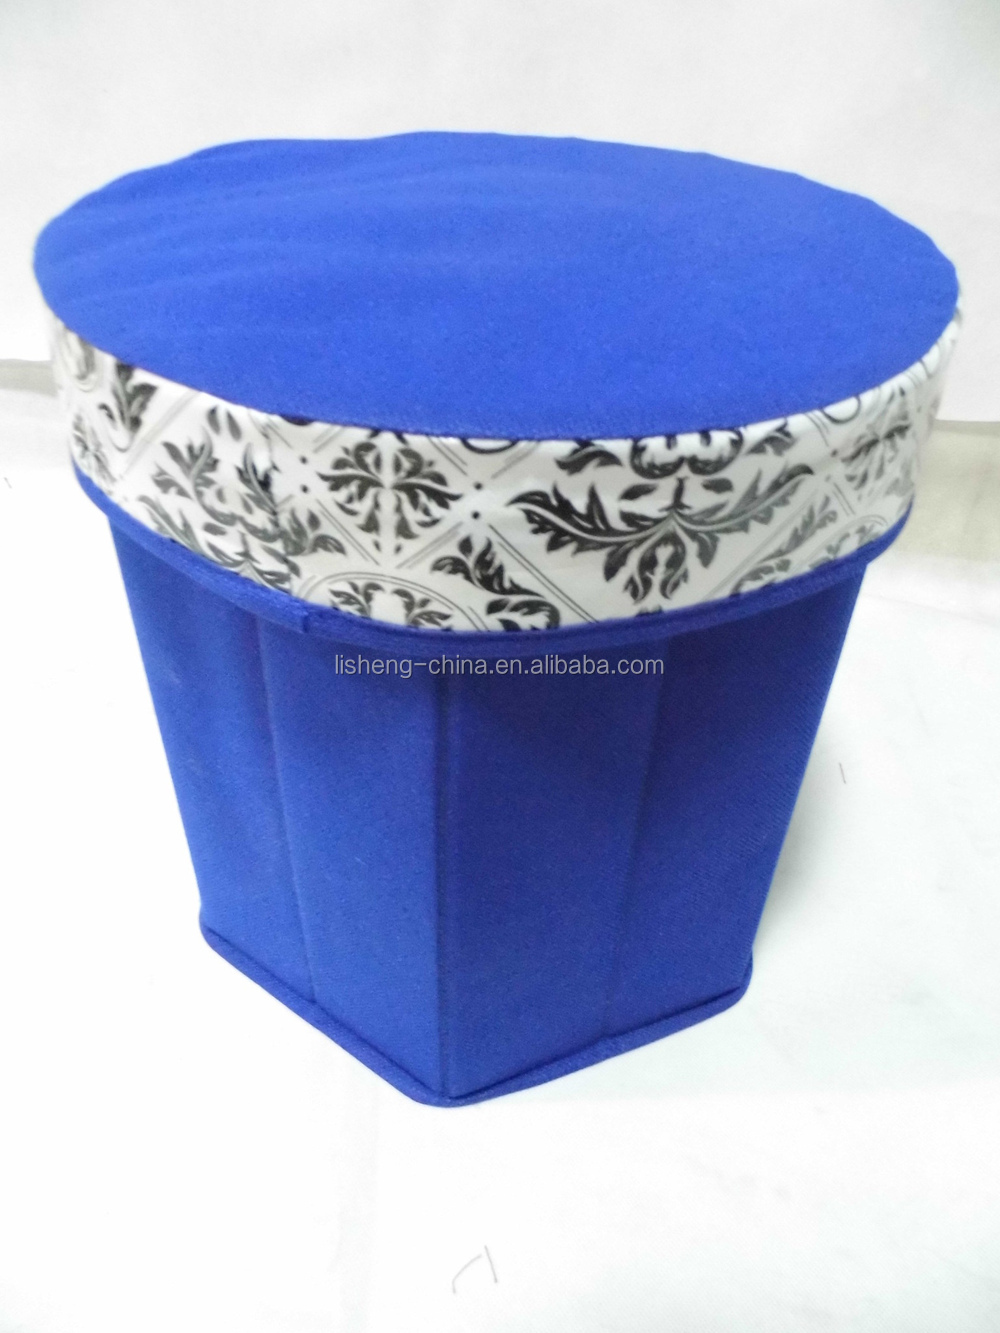 Fabric round storage stool